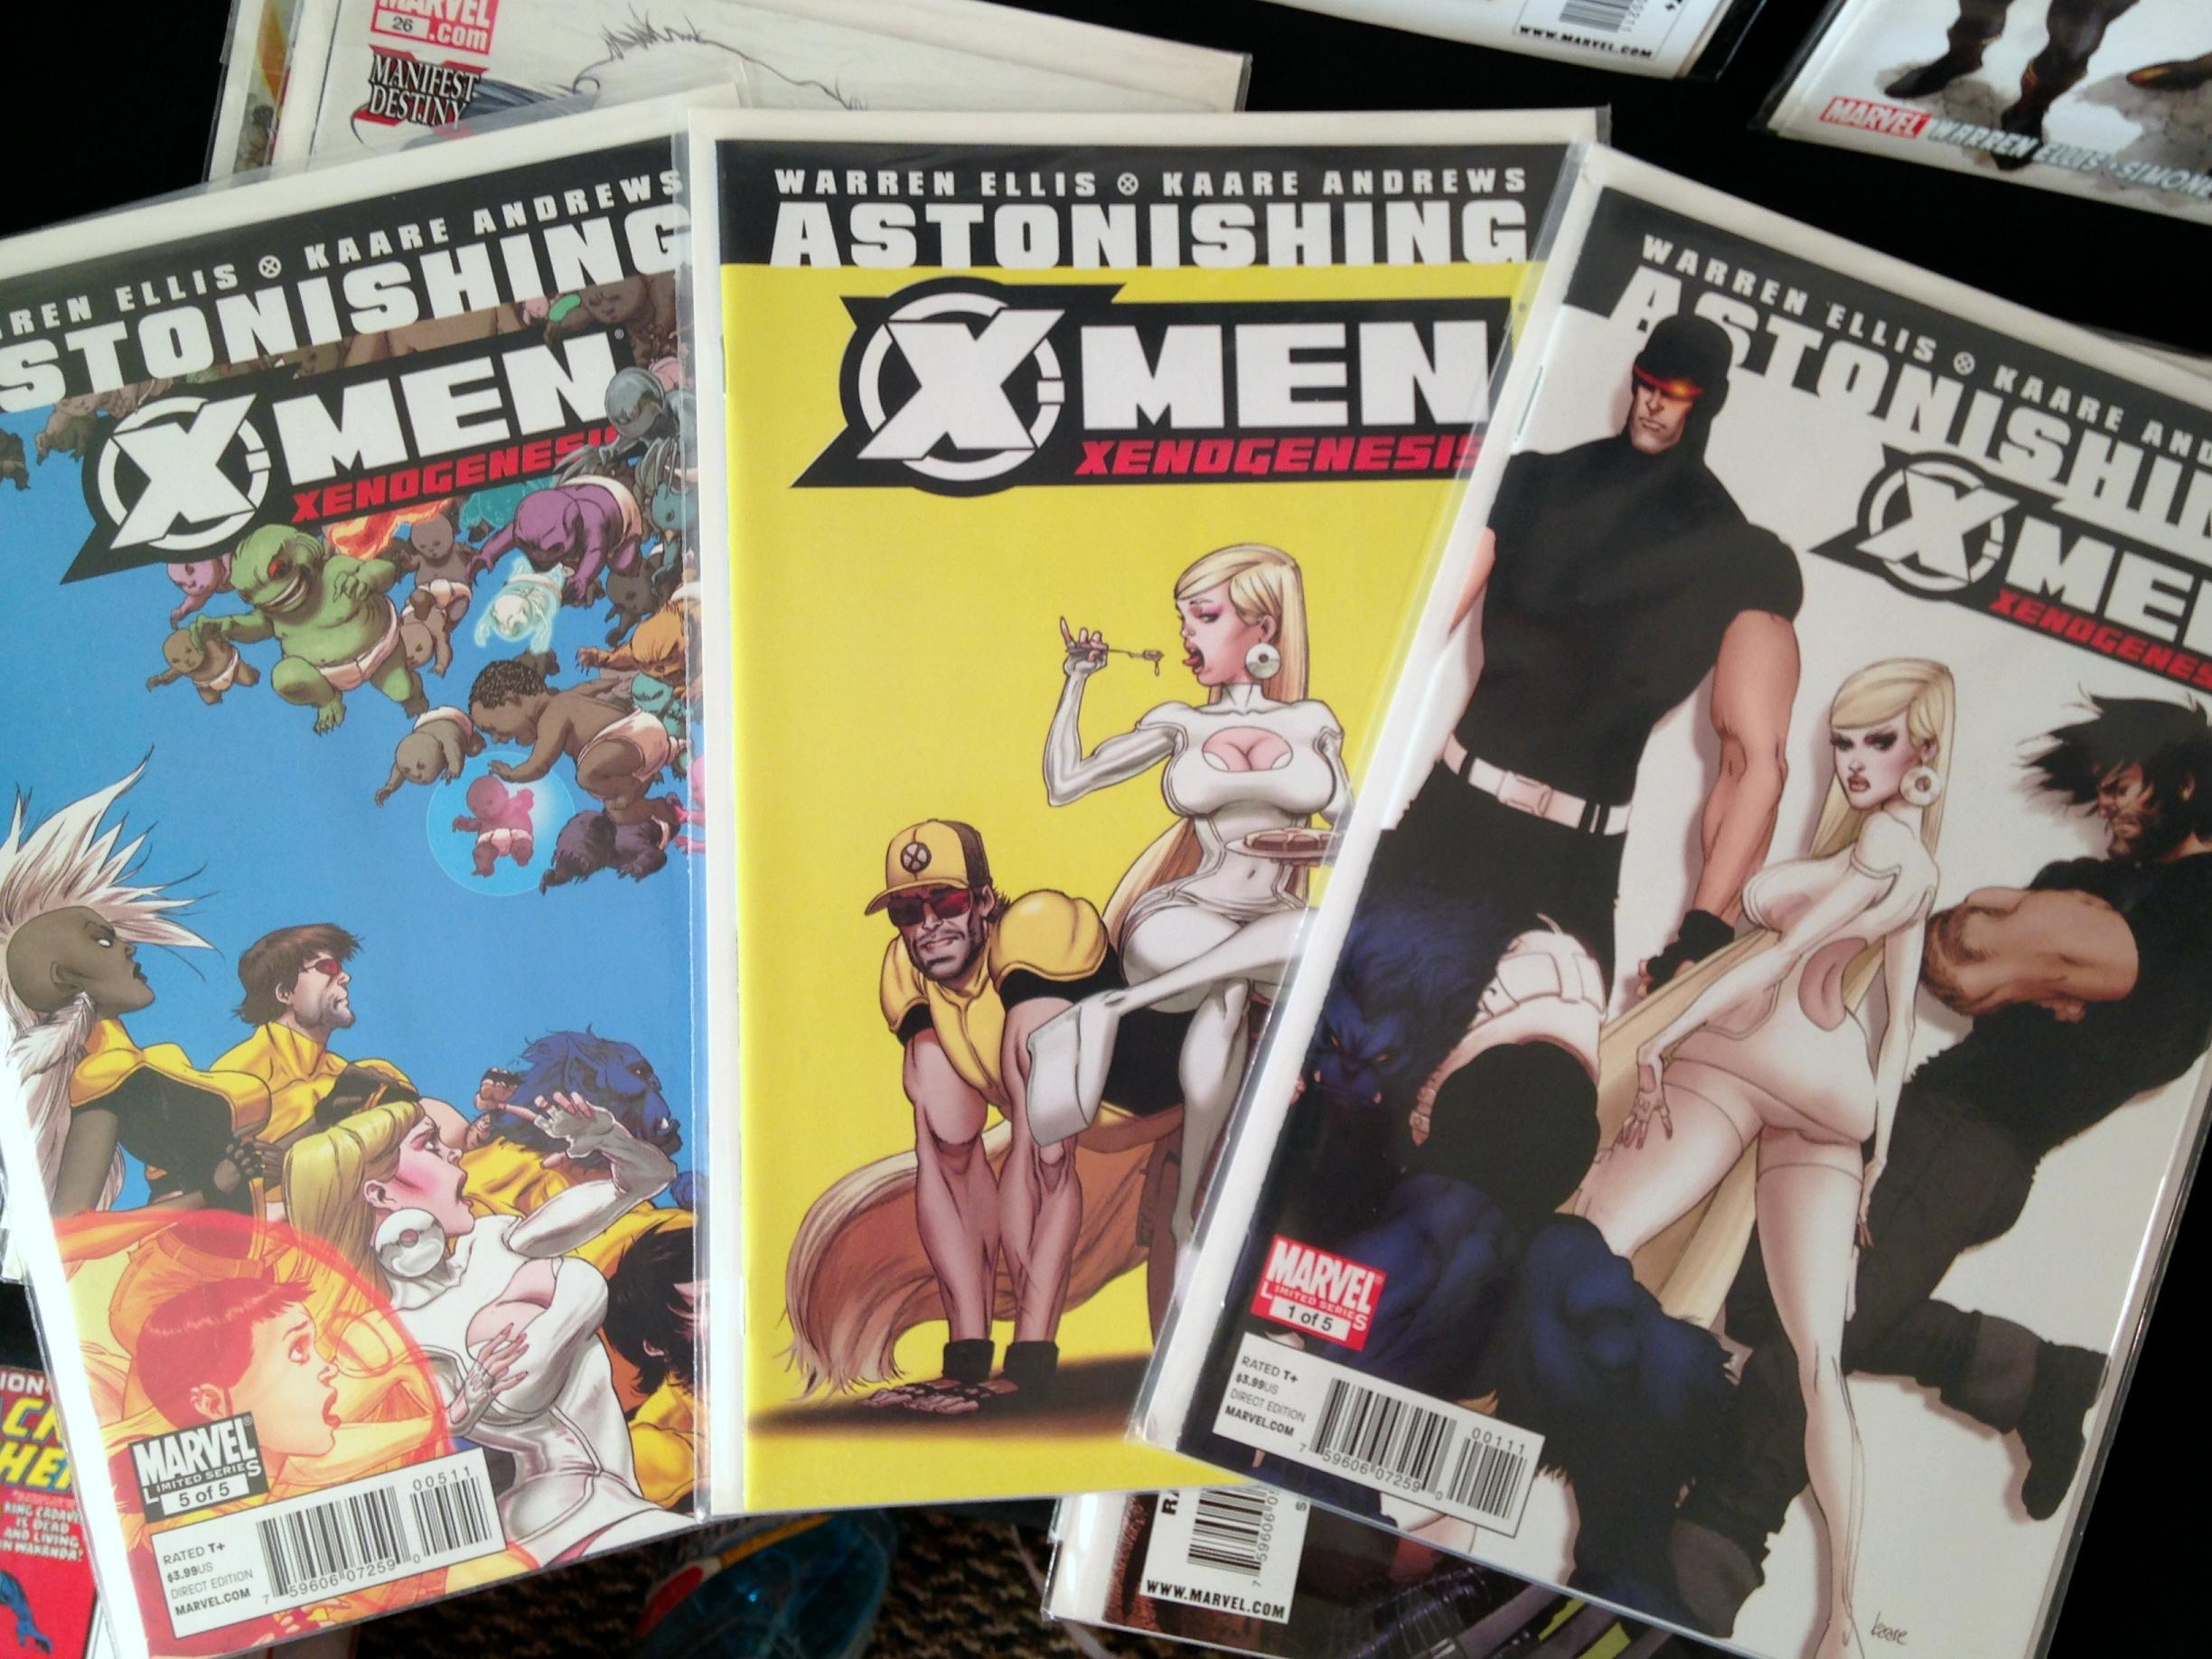 warren ellis astonishing x-men collection (7)